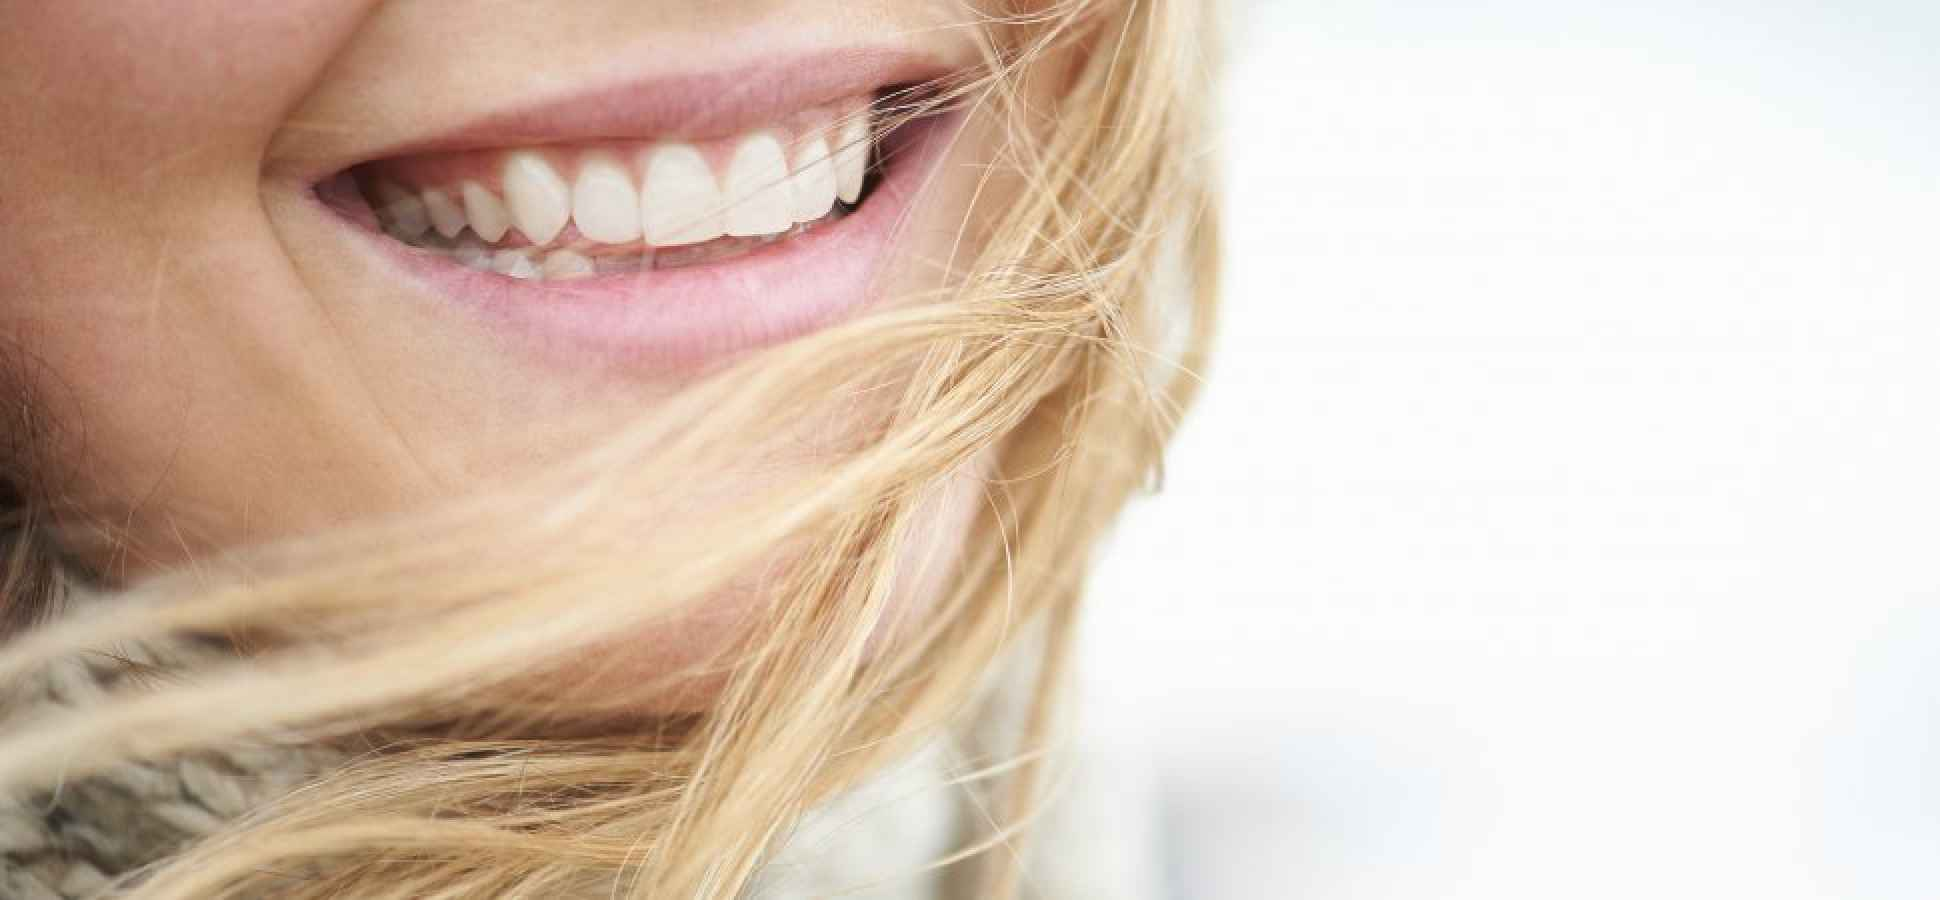 7 Proven Ways to Boost Customer Happiness in 2015